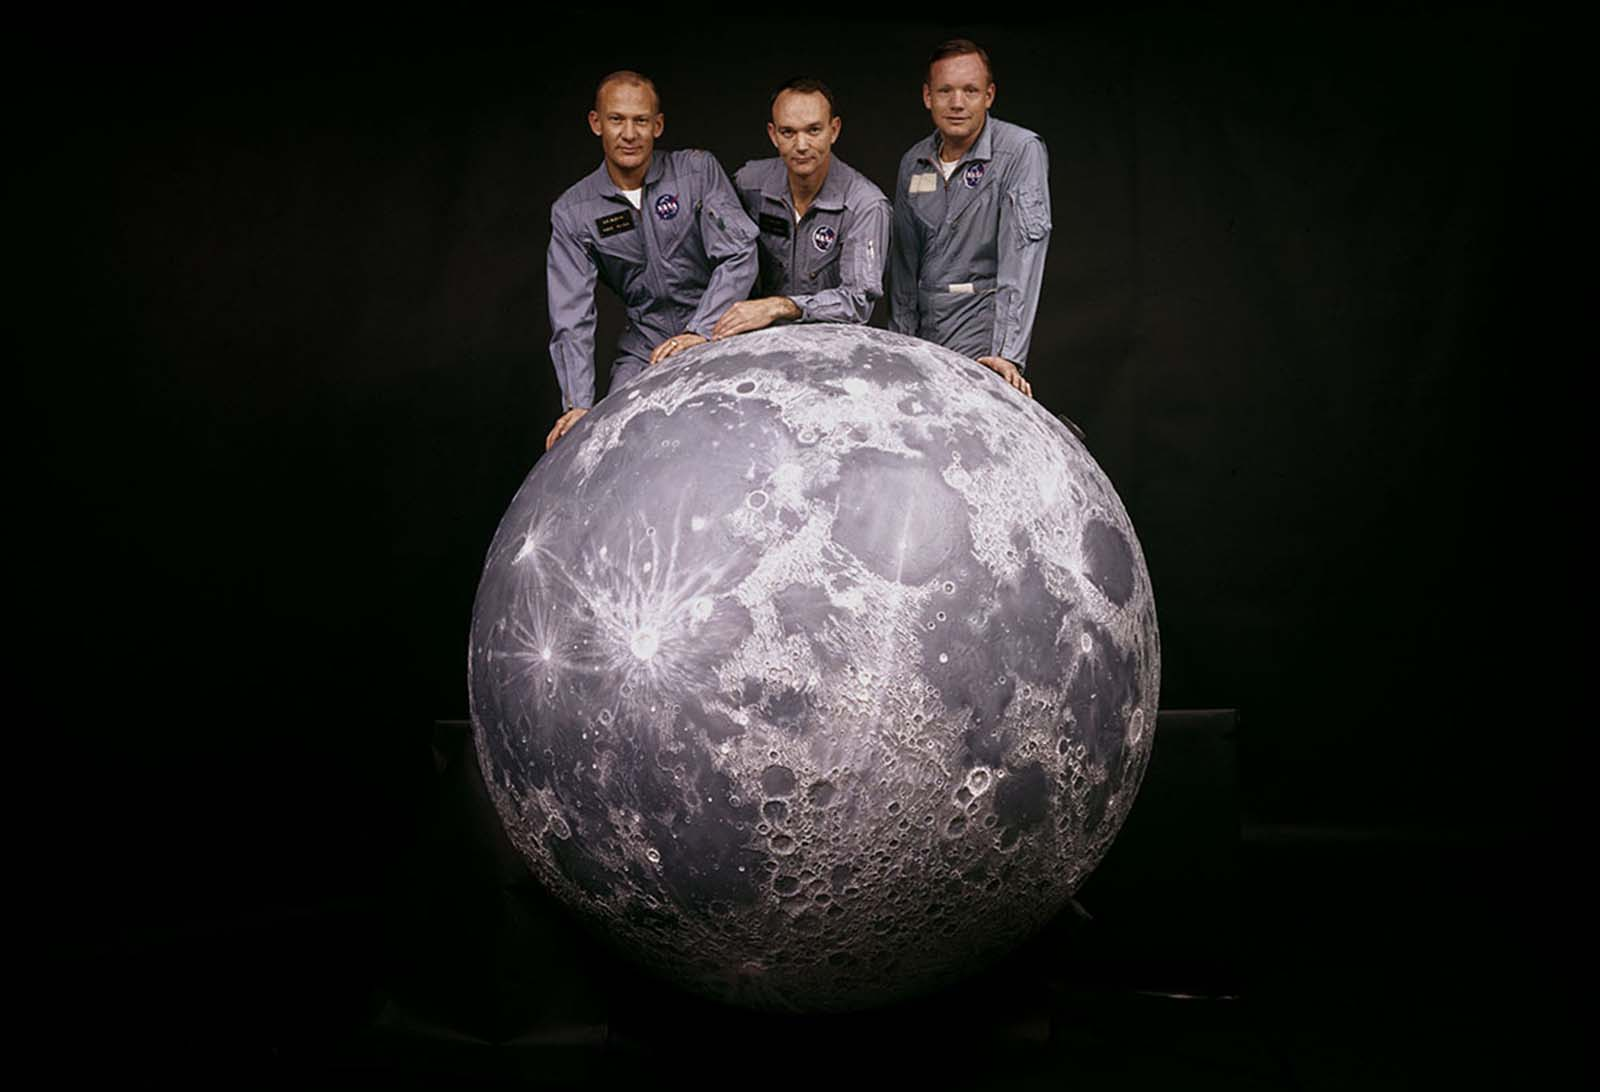 A portrait of Buzz Aldrin, Michael Collins, and Neil Armstrong, the crew of NASA's Apollo 11 mission to the moon, in the spring of 1969.